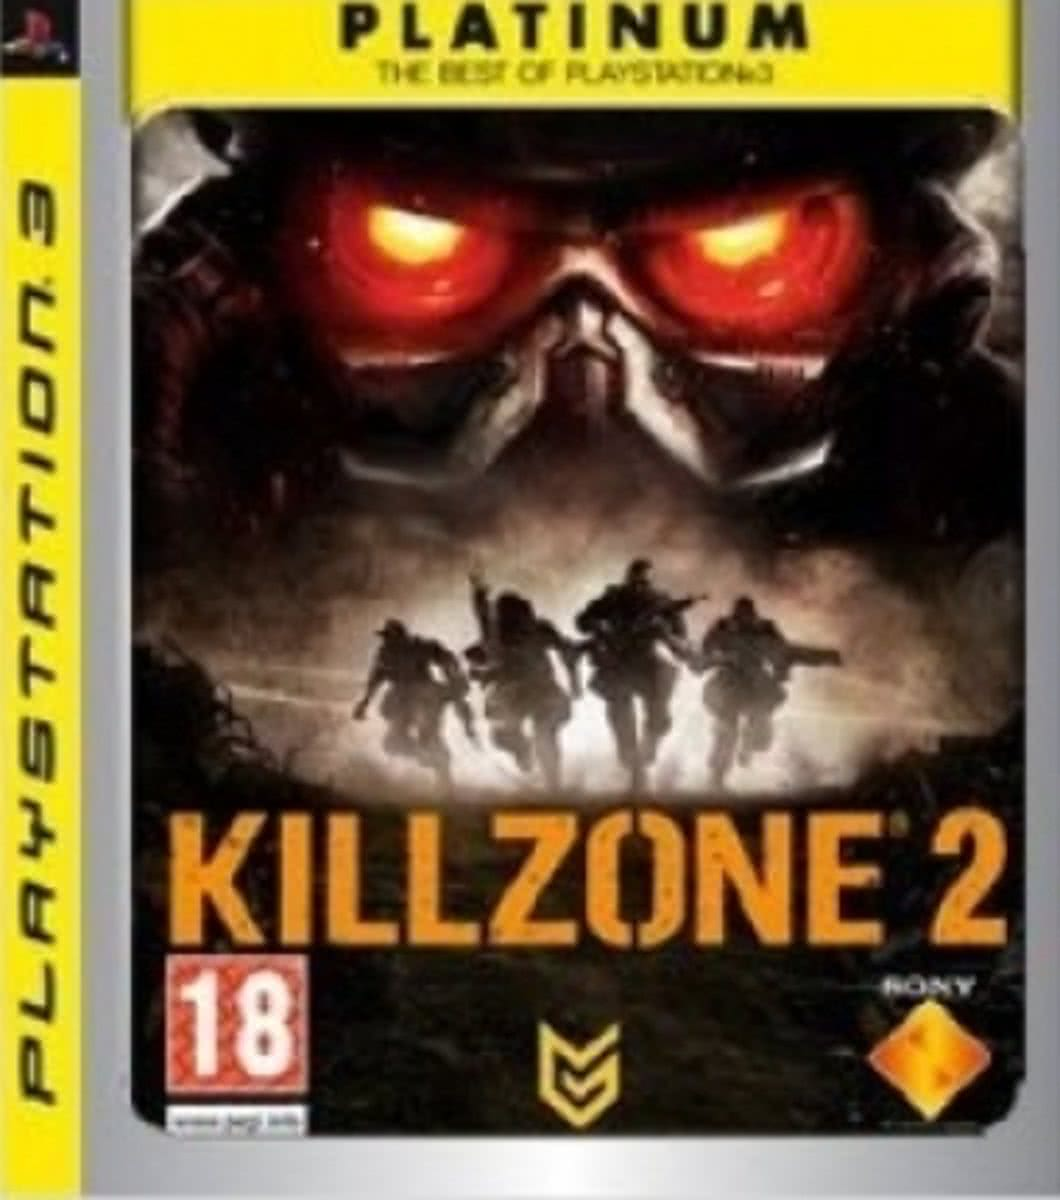 Sony Killzone 2 Platinum Edition, PS3 PlayStation 3 video-game